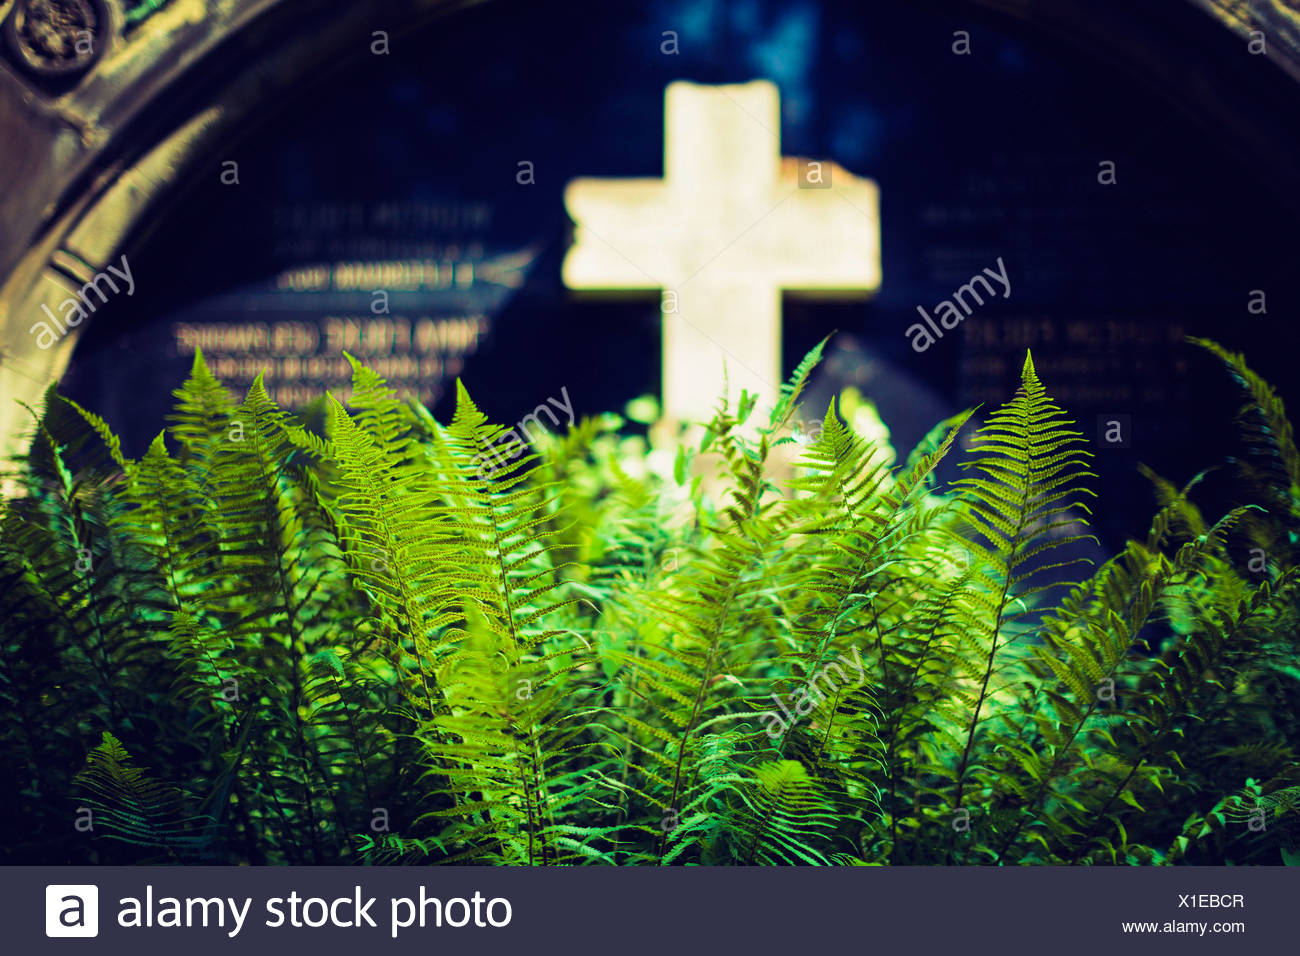 Cross in grave yard with ferns in the foreground. - Stock Image